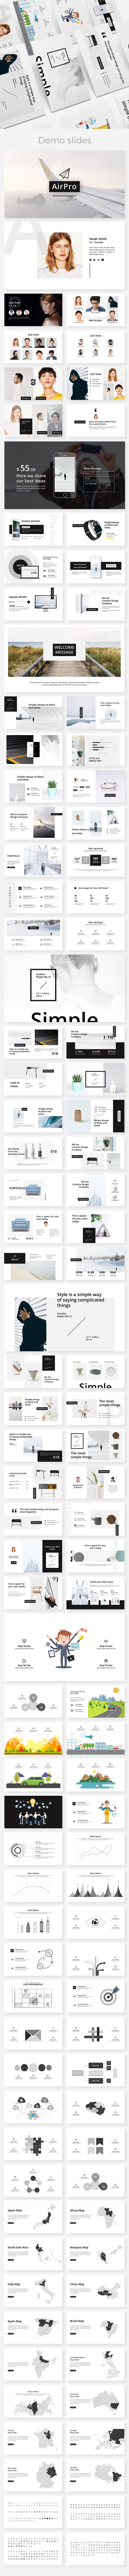 AirPro Minimal Powerpoint Template - Creative PowerPoint Templates